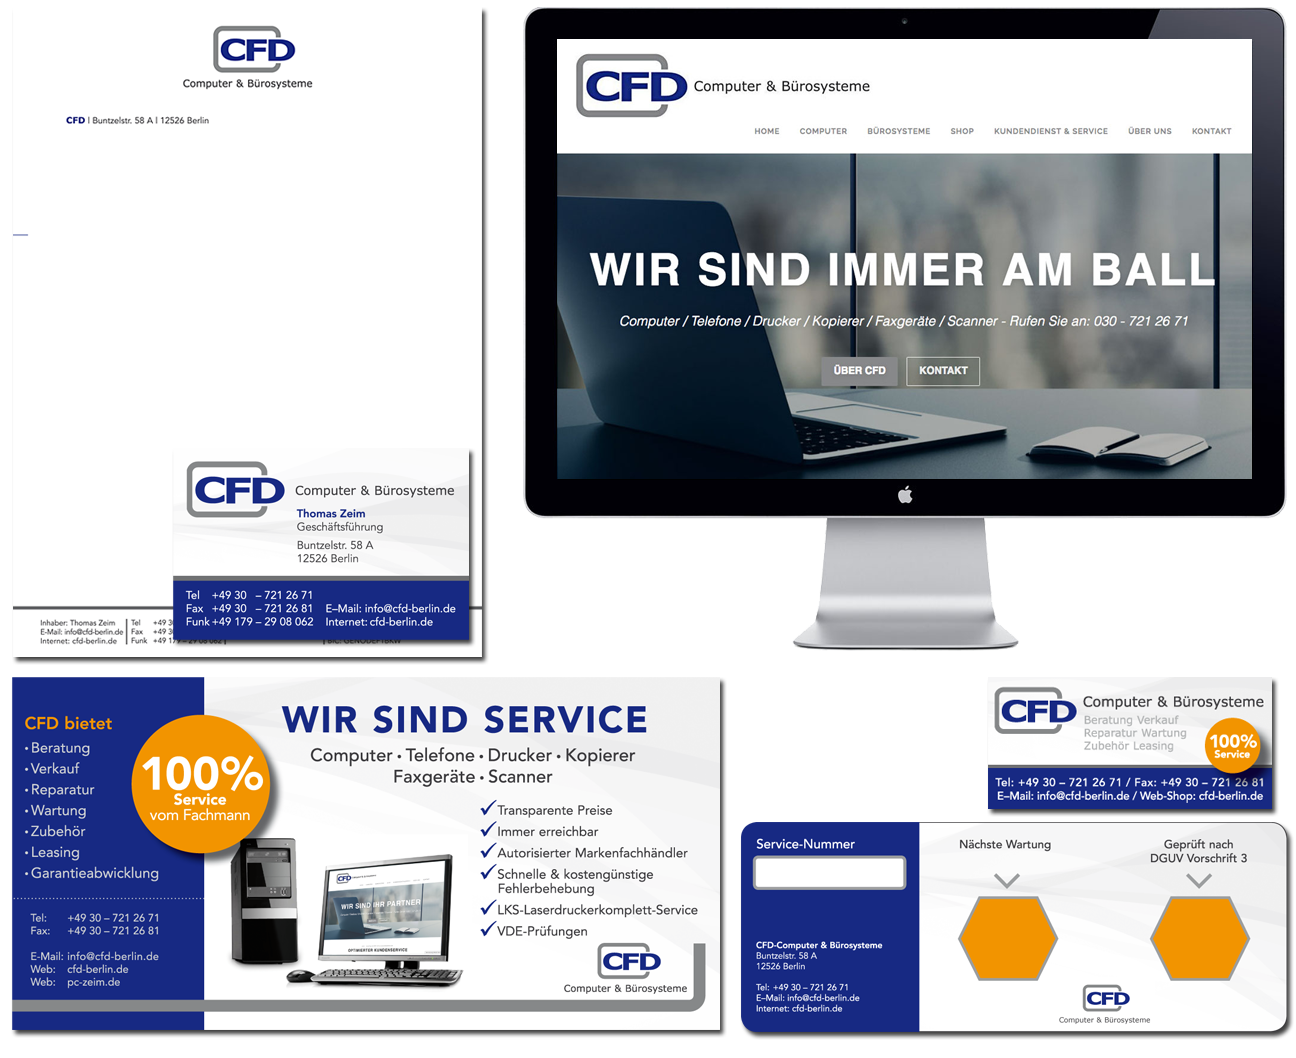 CFD Computer & Bürosysteme - Corporate Design